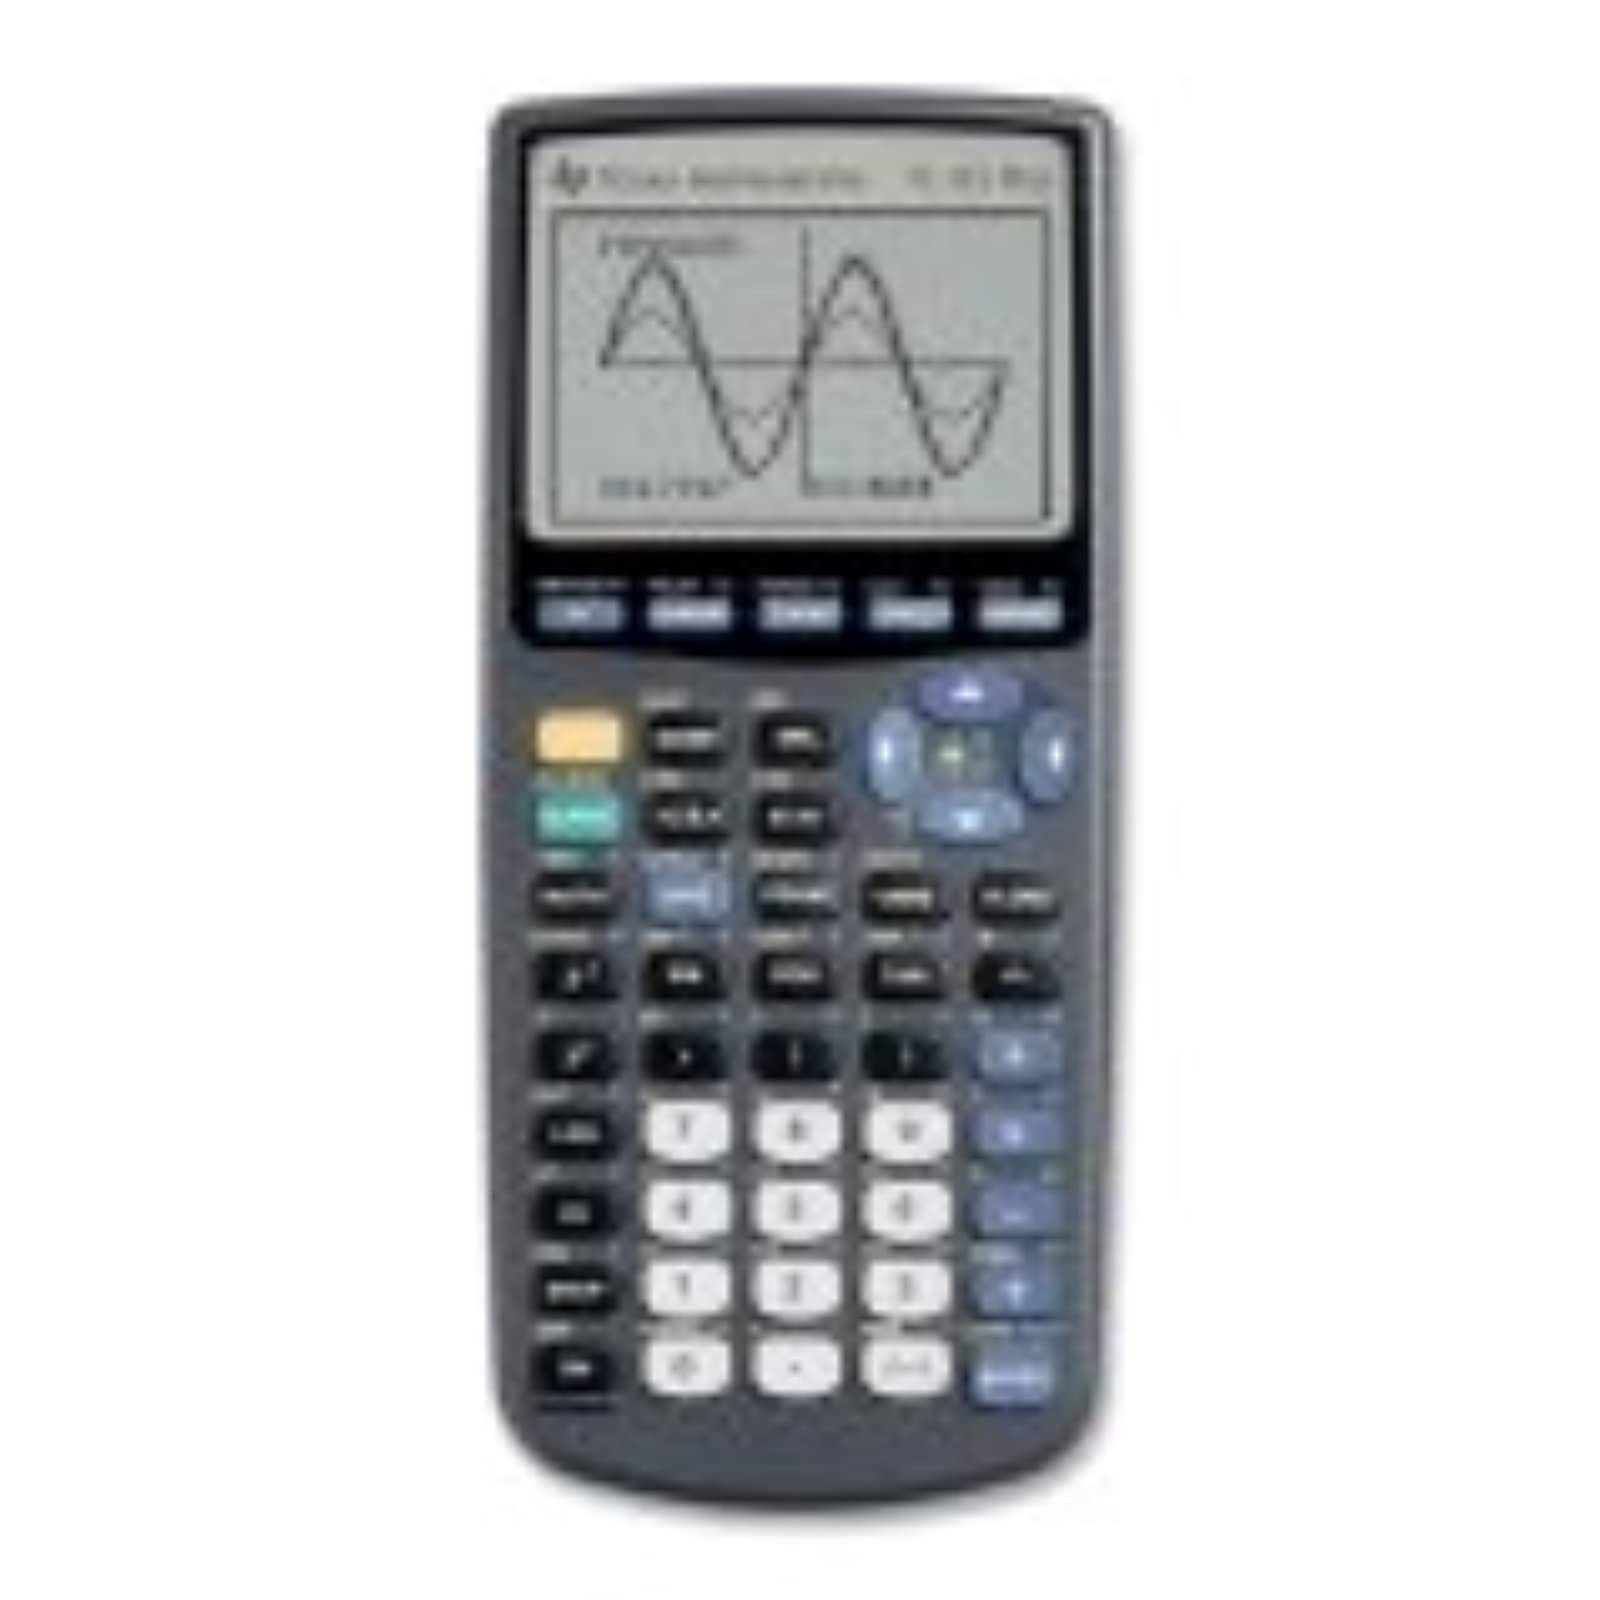 Texas Instruments 83PL Clm 1L1 G V131002V8B Calculator Handheld Graphing